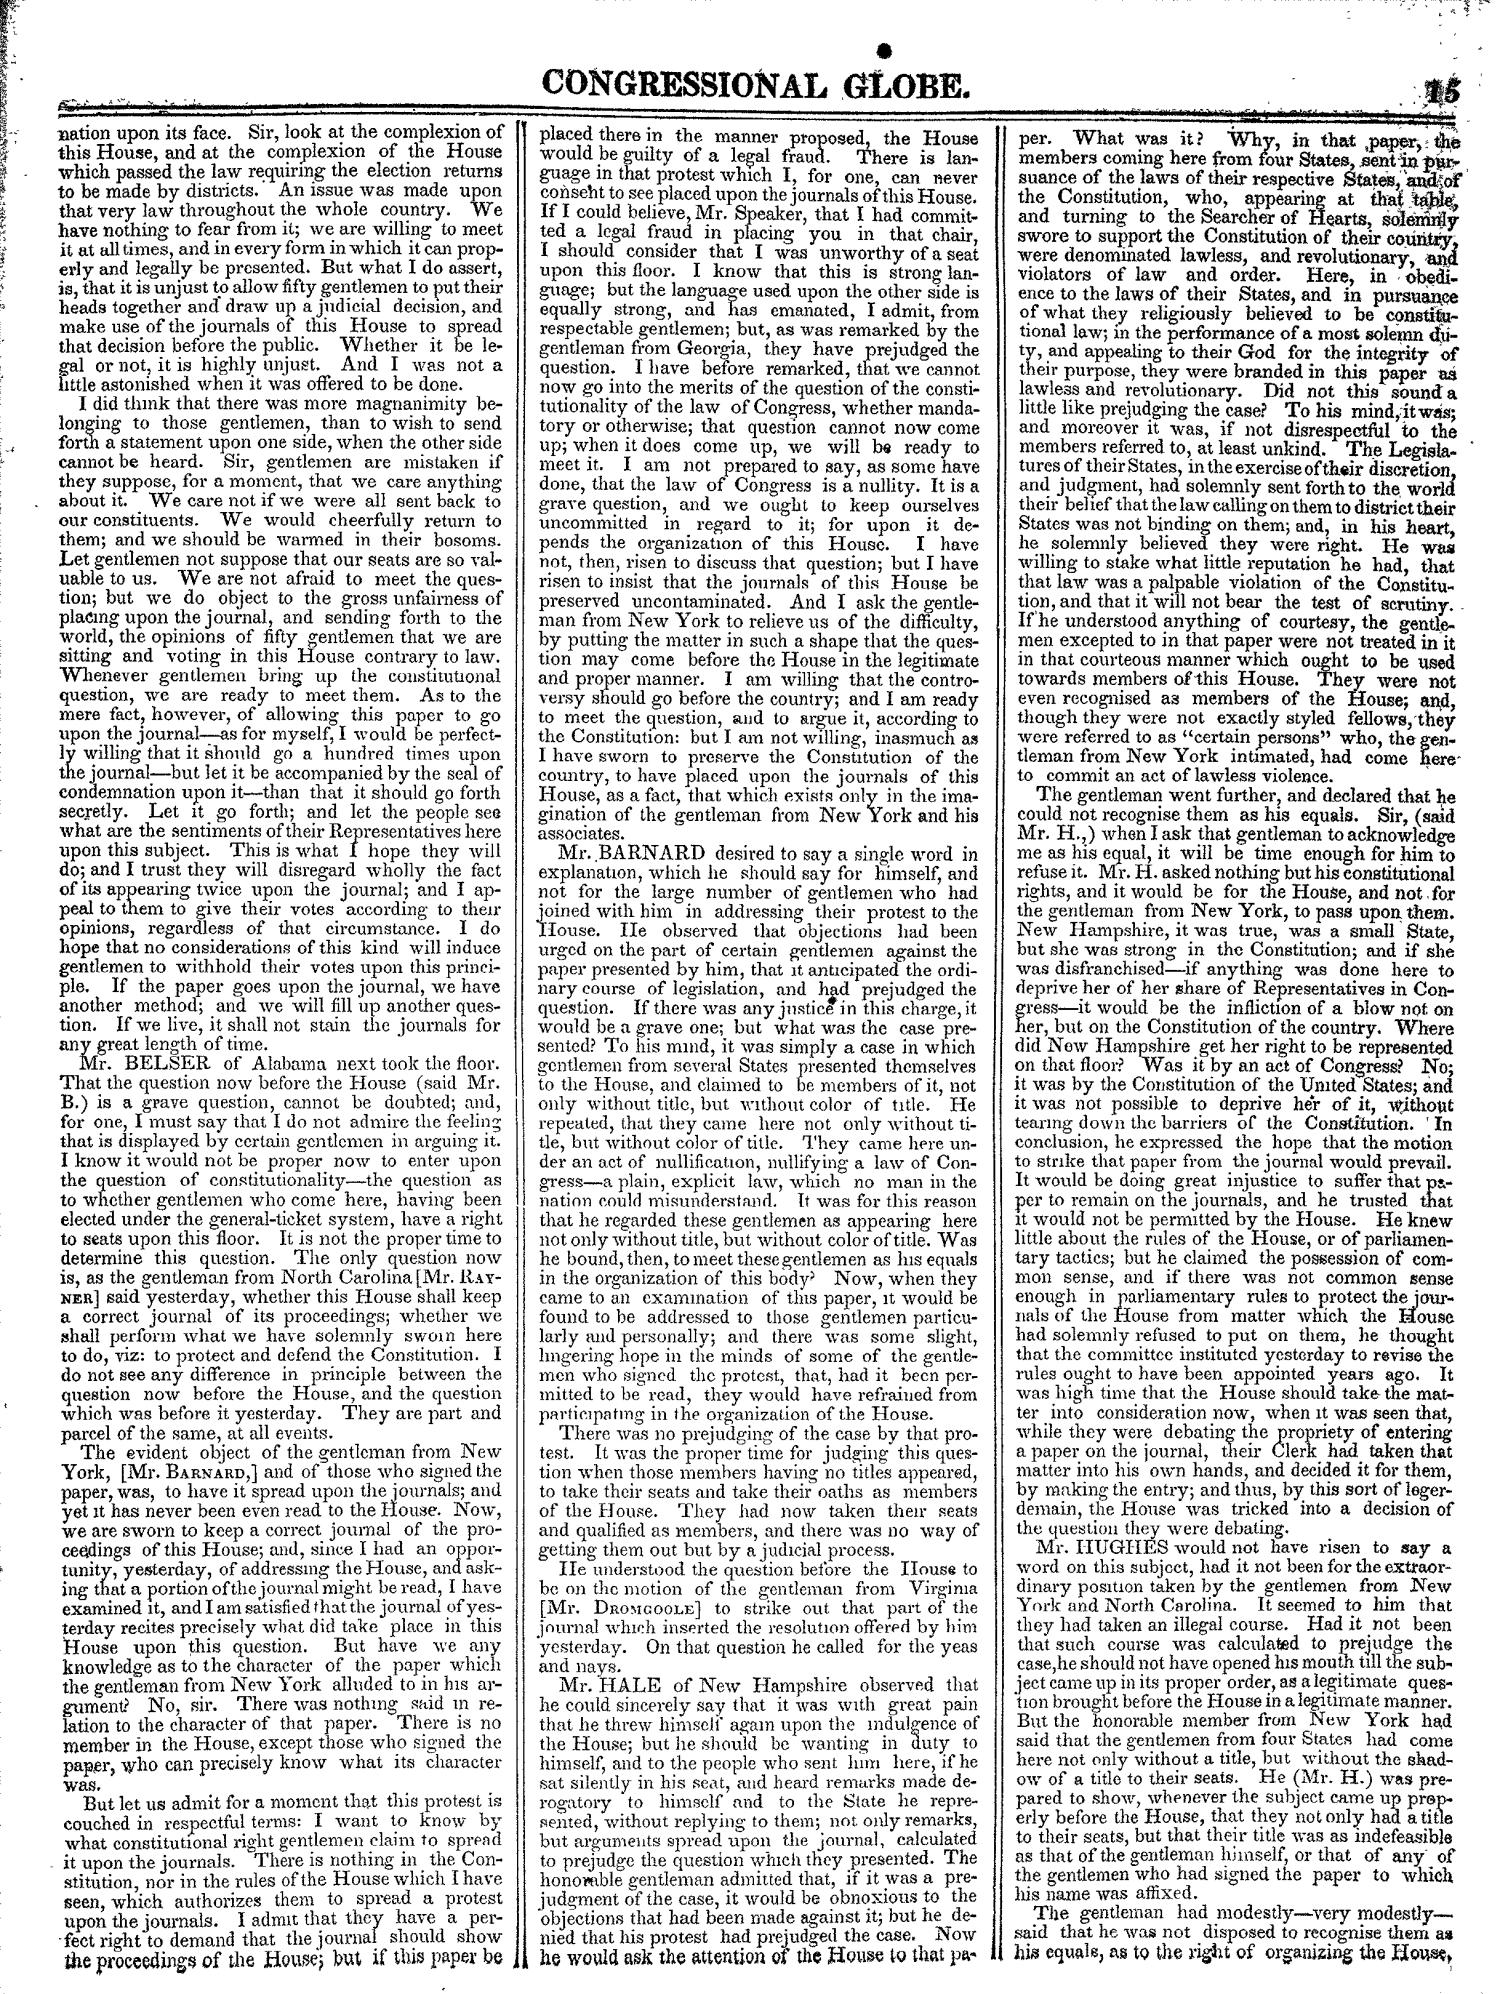 The Congressional Globe, Volume 13, Part 1: Twenty-Eighth Congress, First Session                                                                                                      15